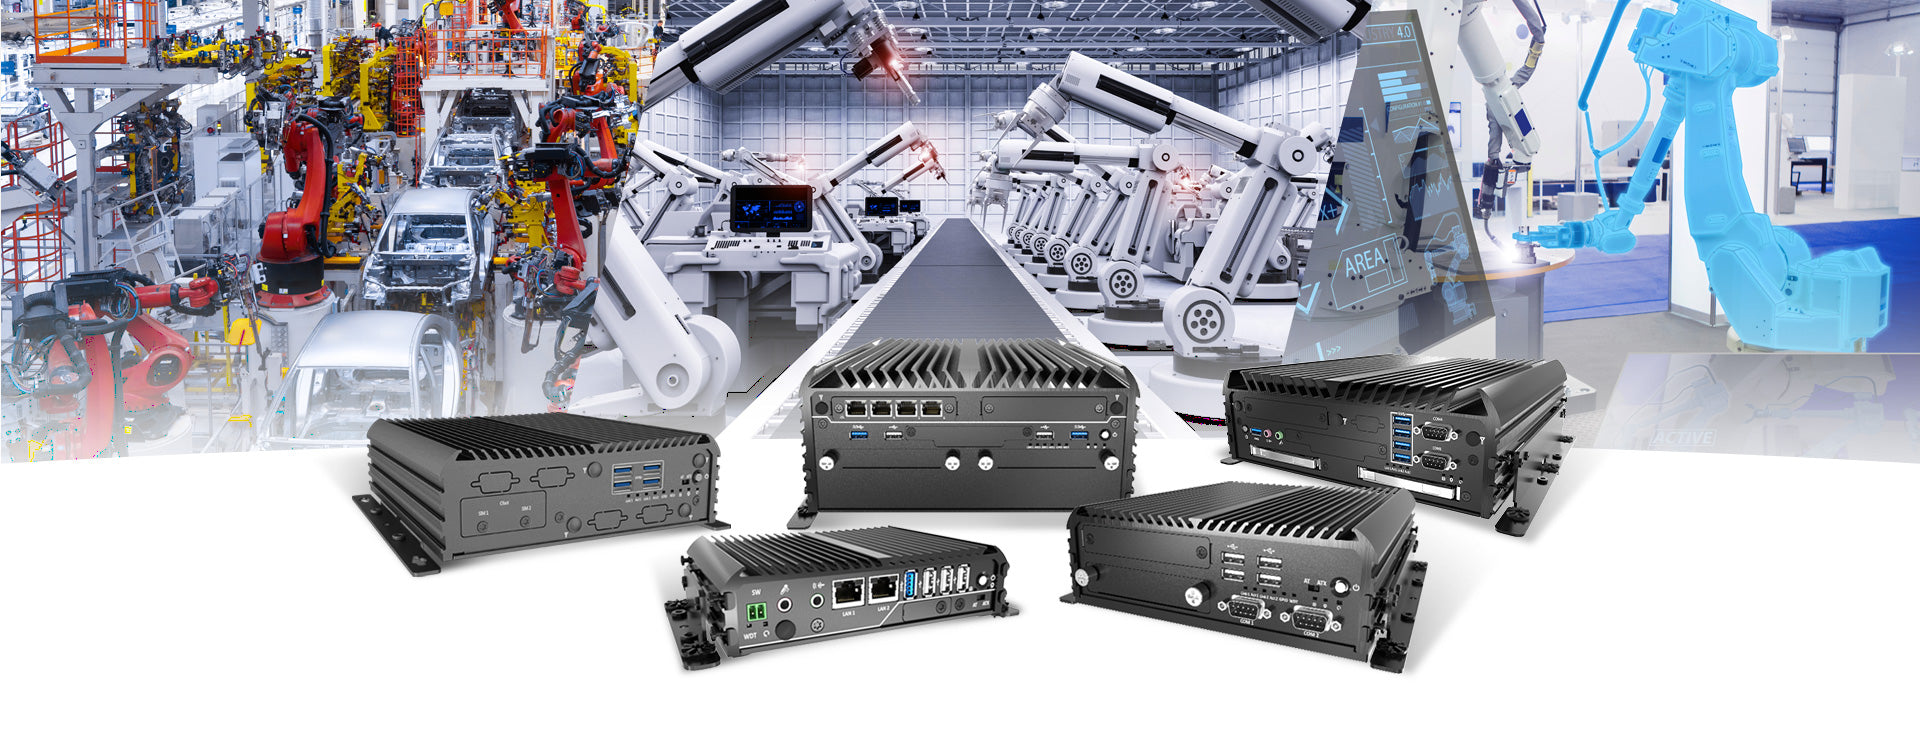 Rugged Fanless Industrial Computer